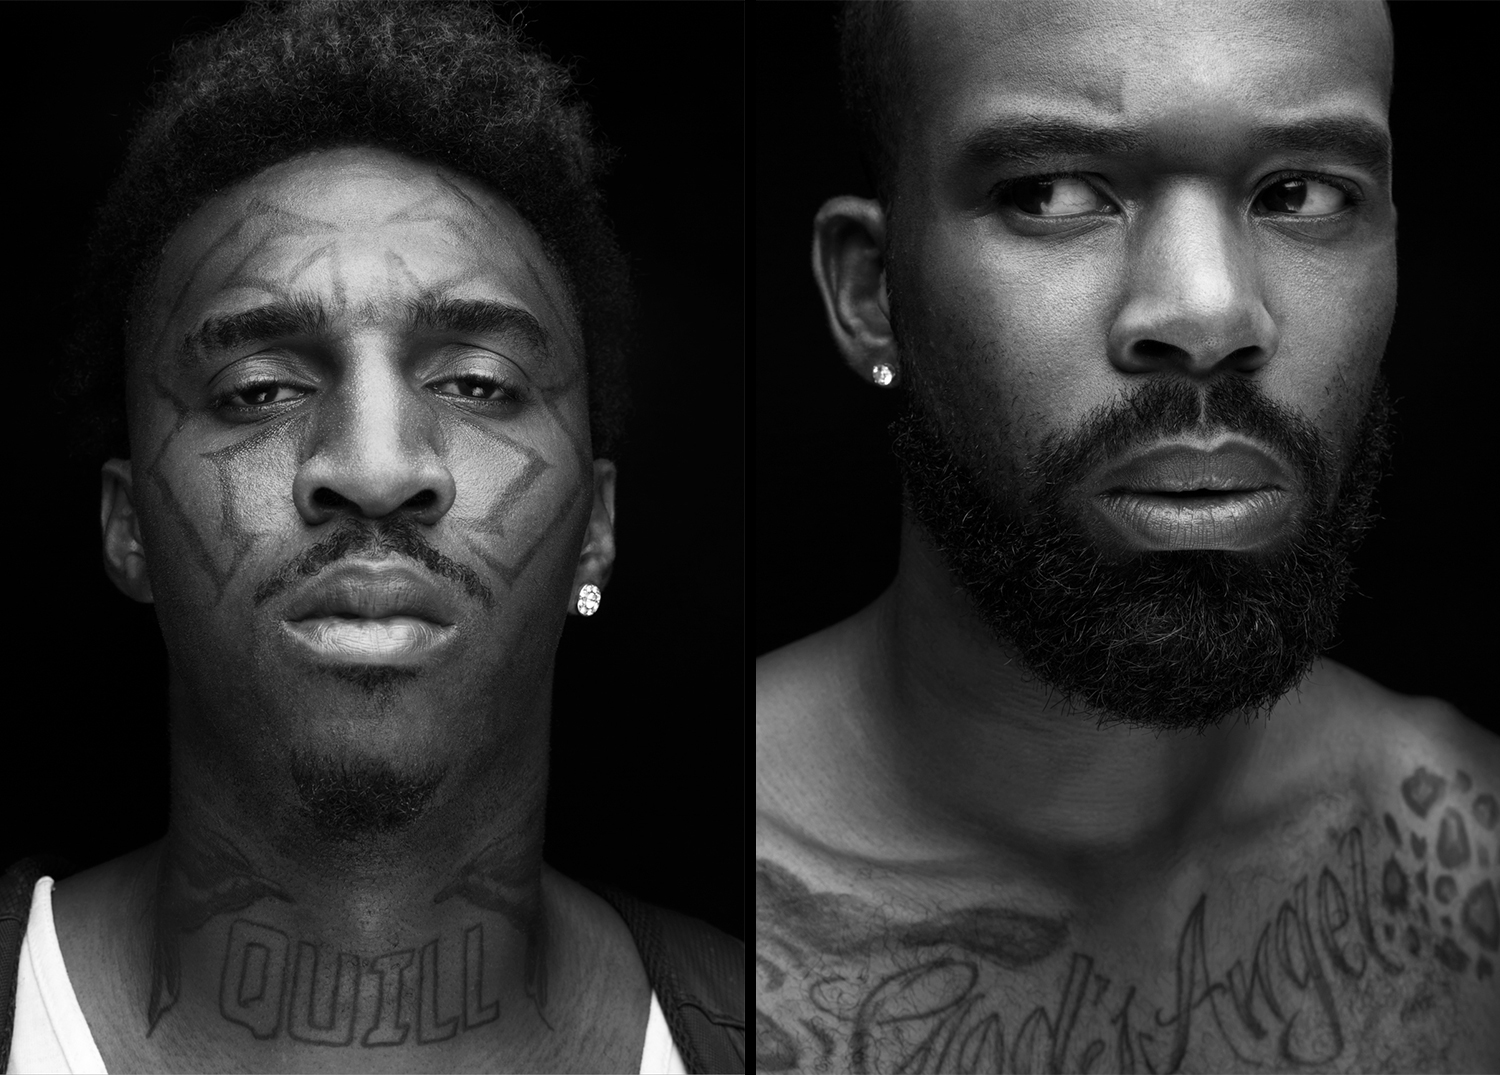 Portraits of young, tattooed, black guys in front of a black backdrop